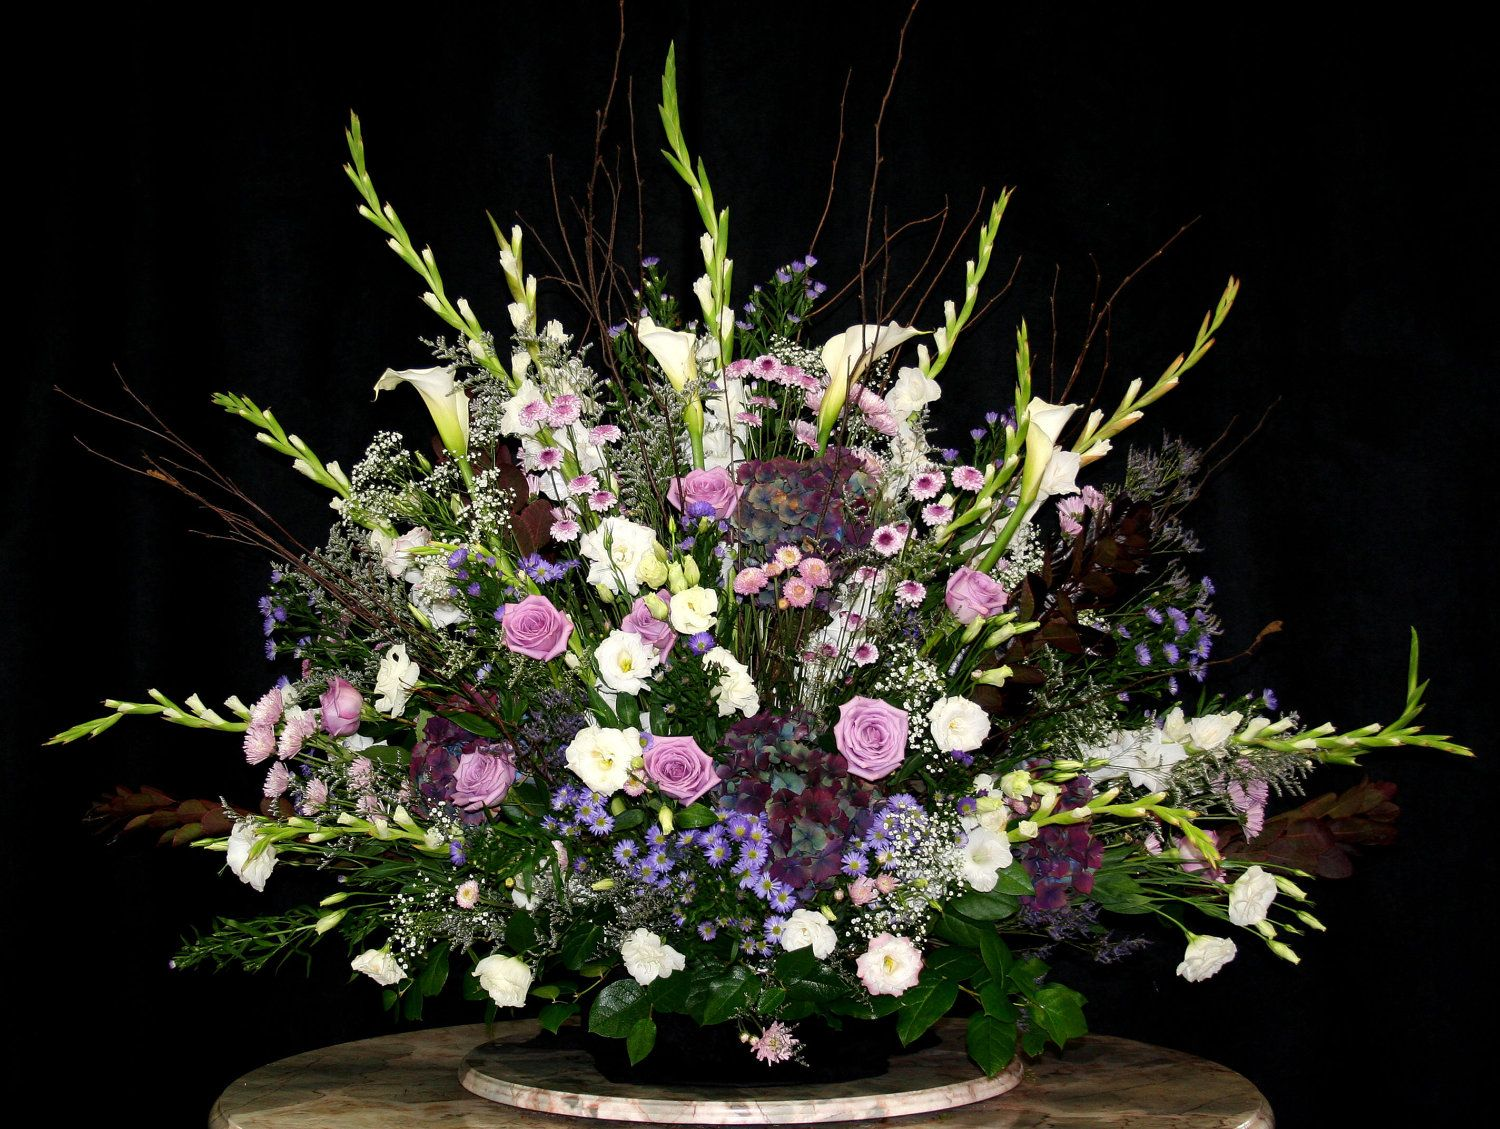 Wedding Flowers Church Alta Giant Altar Arrangement Church Flowers Event Church Flower Arrangements Wedding Flower Arrangements Church Flower Arrangements